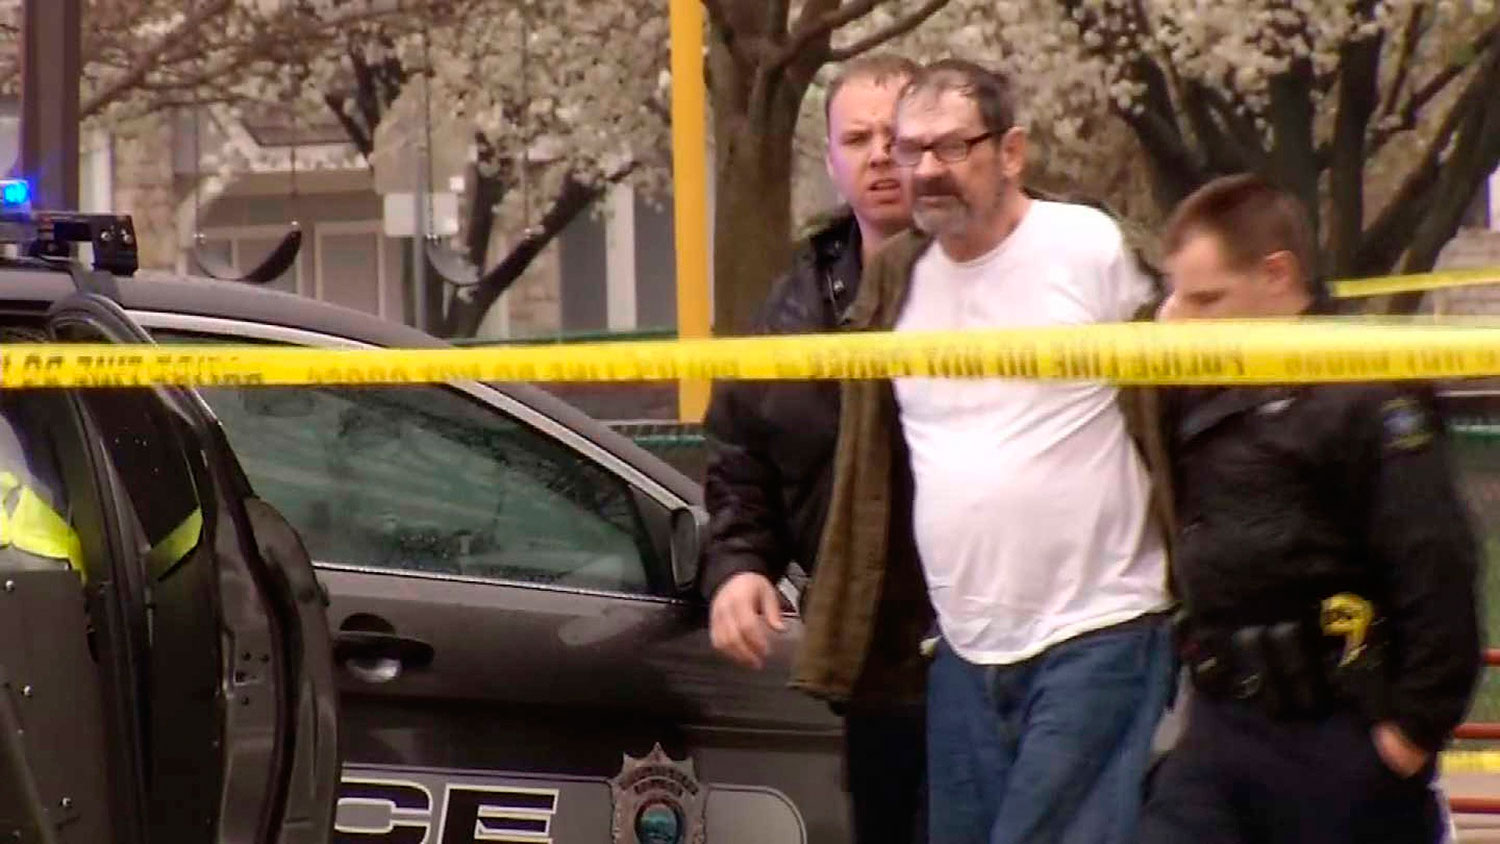 Frazier Glenn Cross, 73, of Aurora, Missouri, is led to a police car after his arrest following shooting incidents which killed three people at two Jewish centers on Sunday in Overland Park, south of Kansas City, Kansas in a still image from video April 13, 2014.